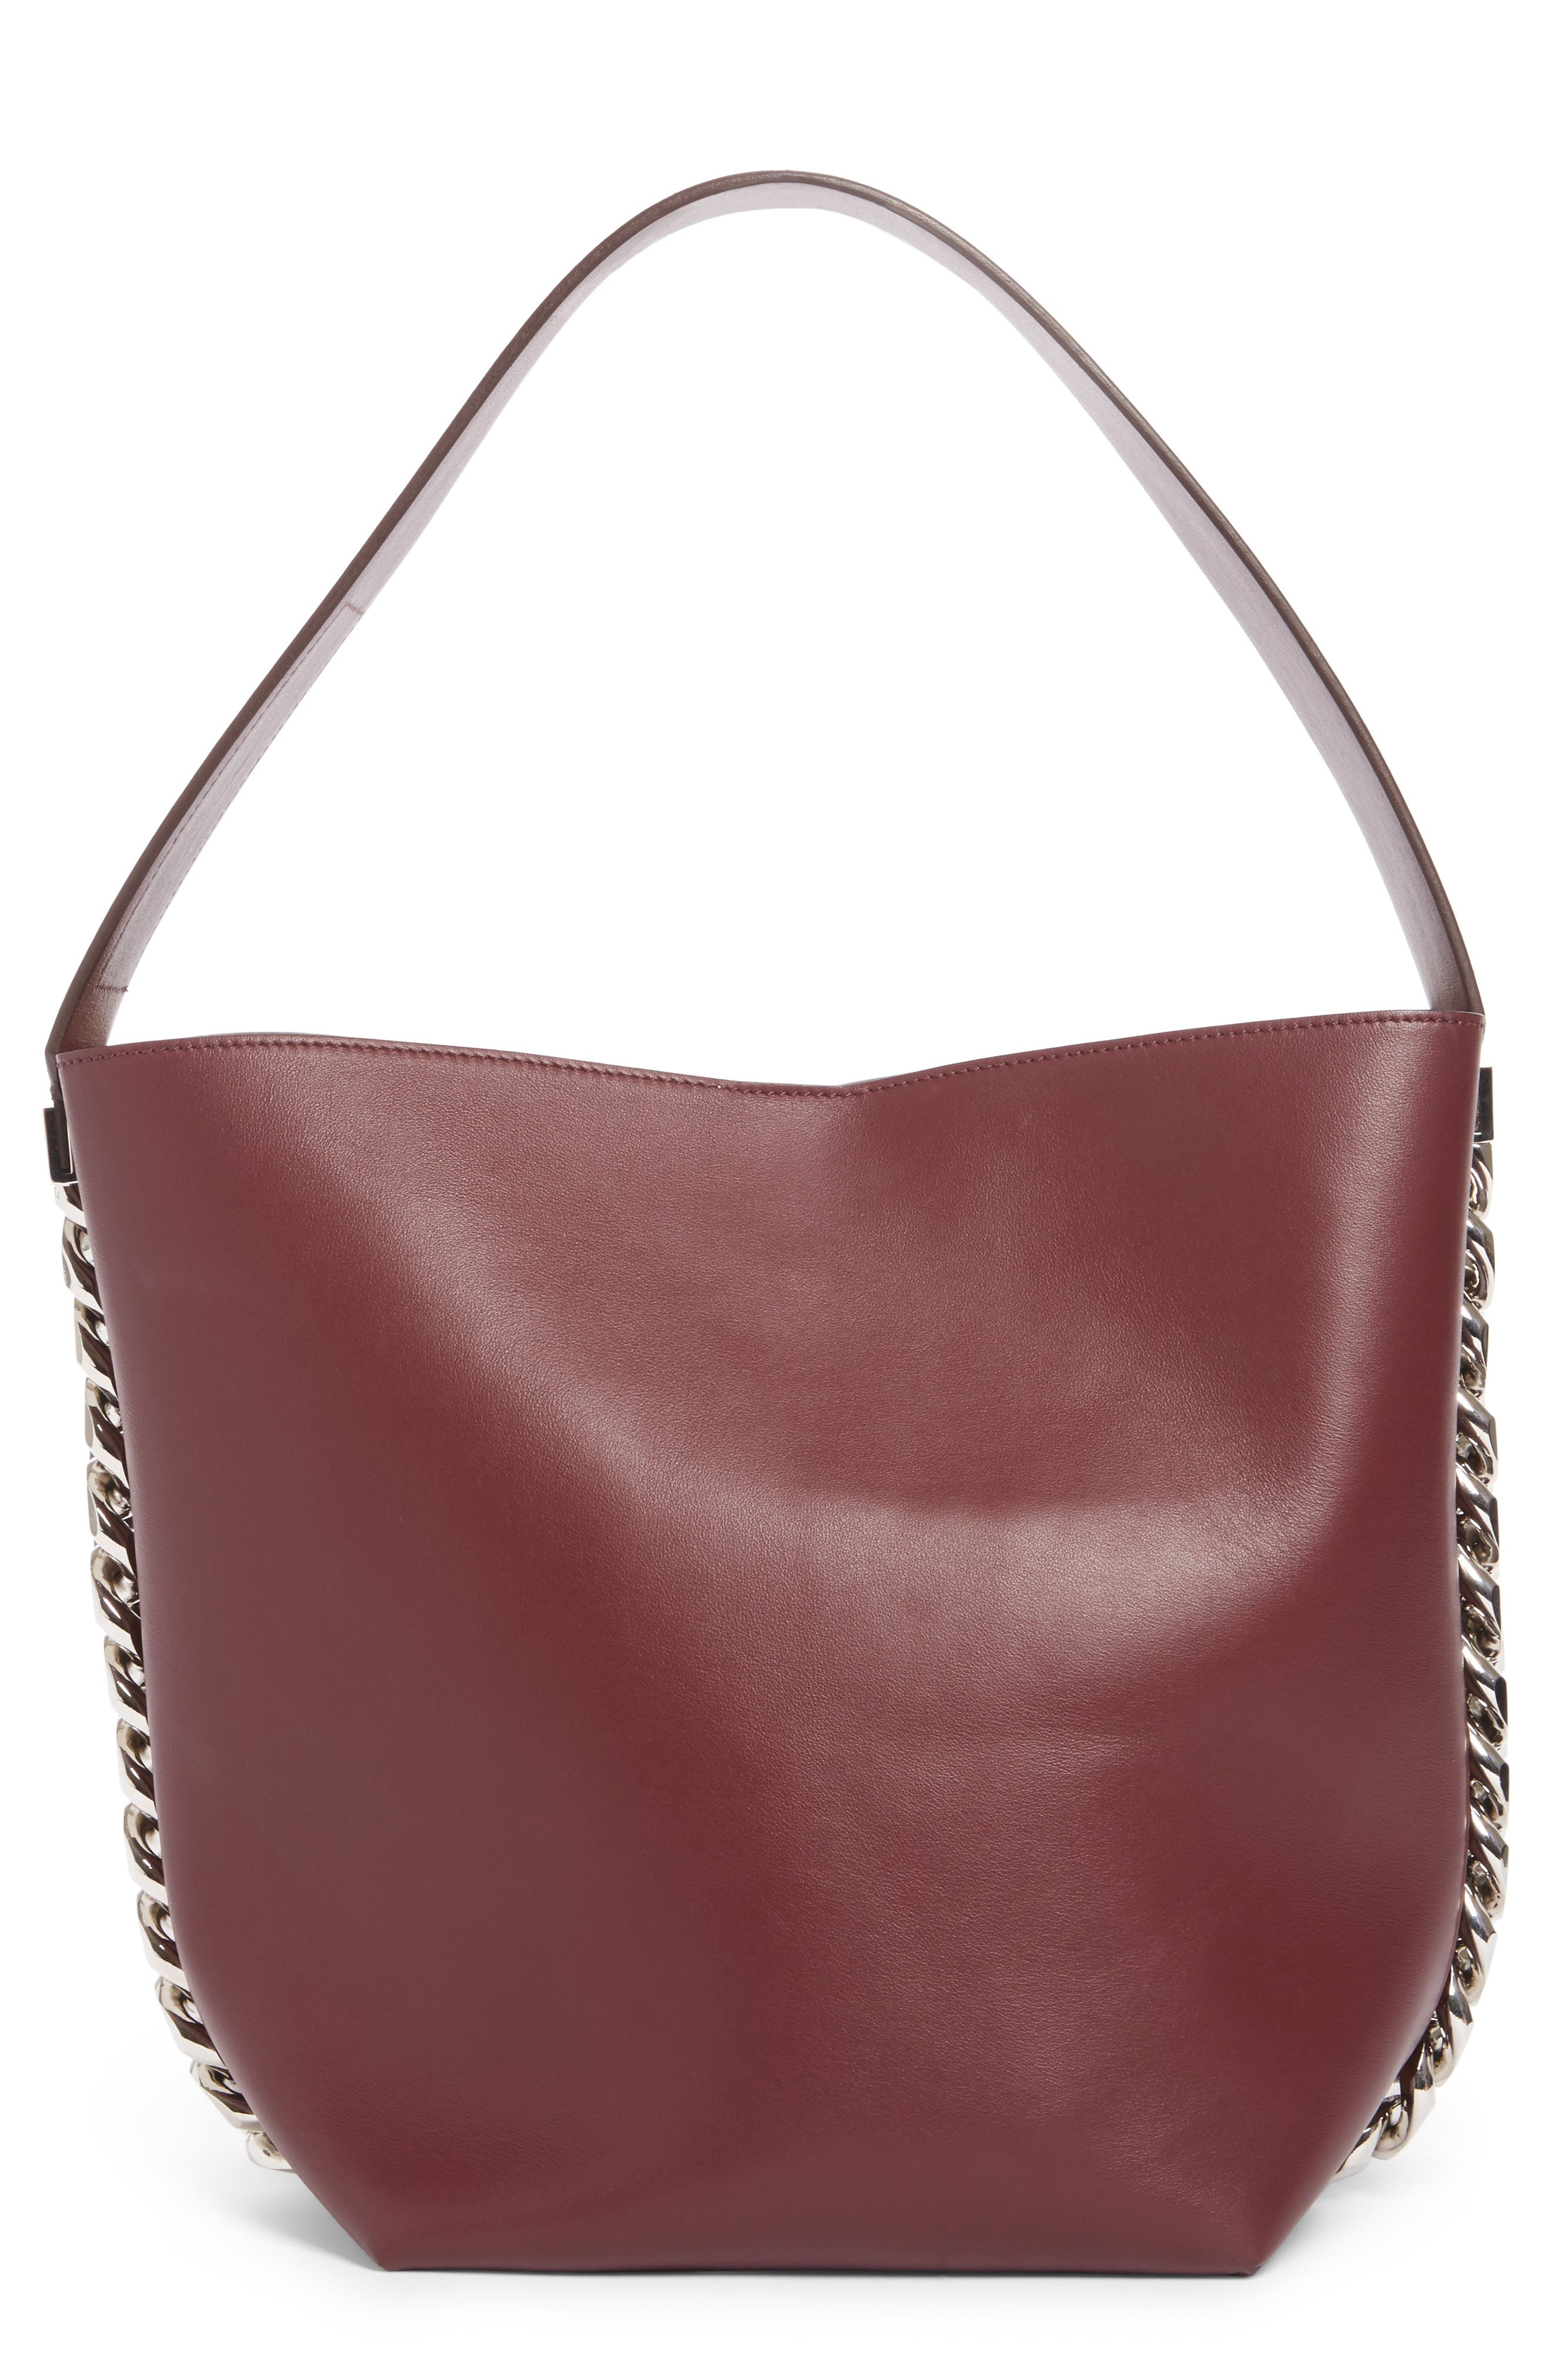 Infinity Calfskin Leather Bucket Bag,                         Main,                         color, Oxblood